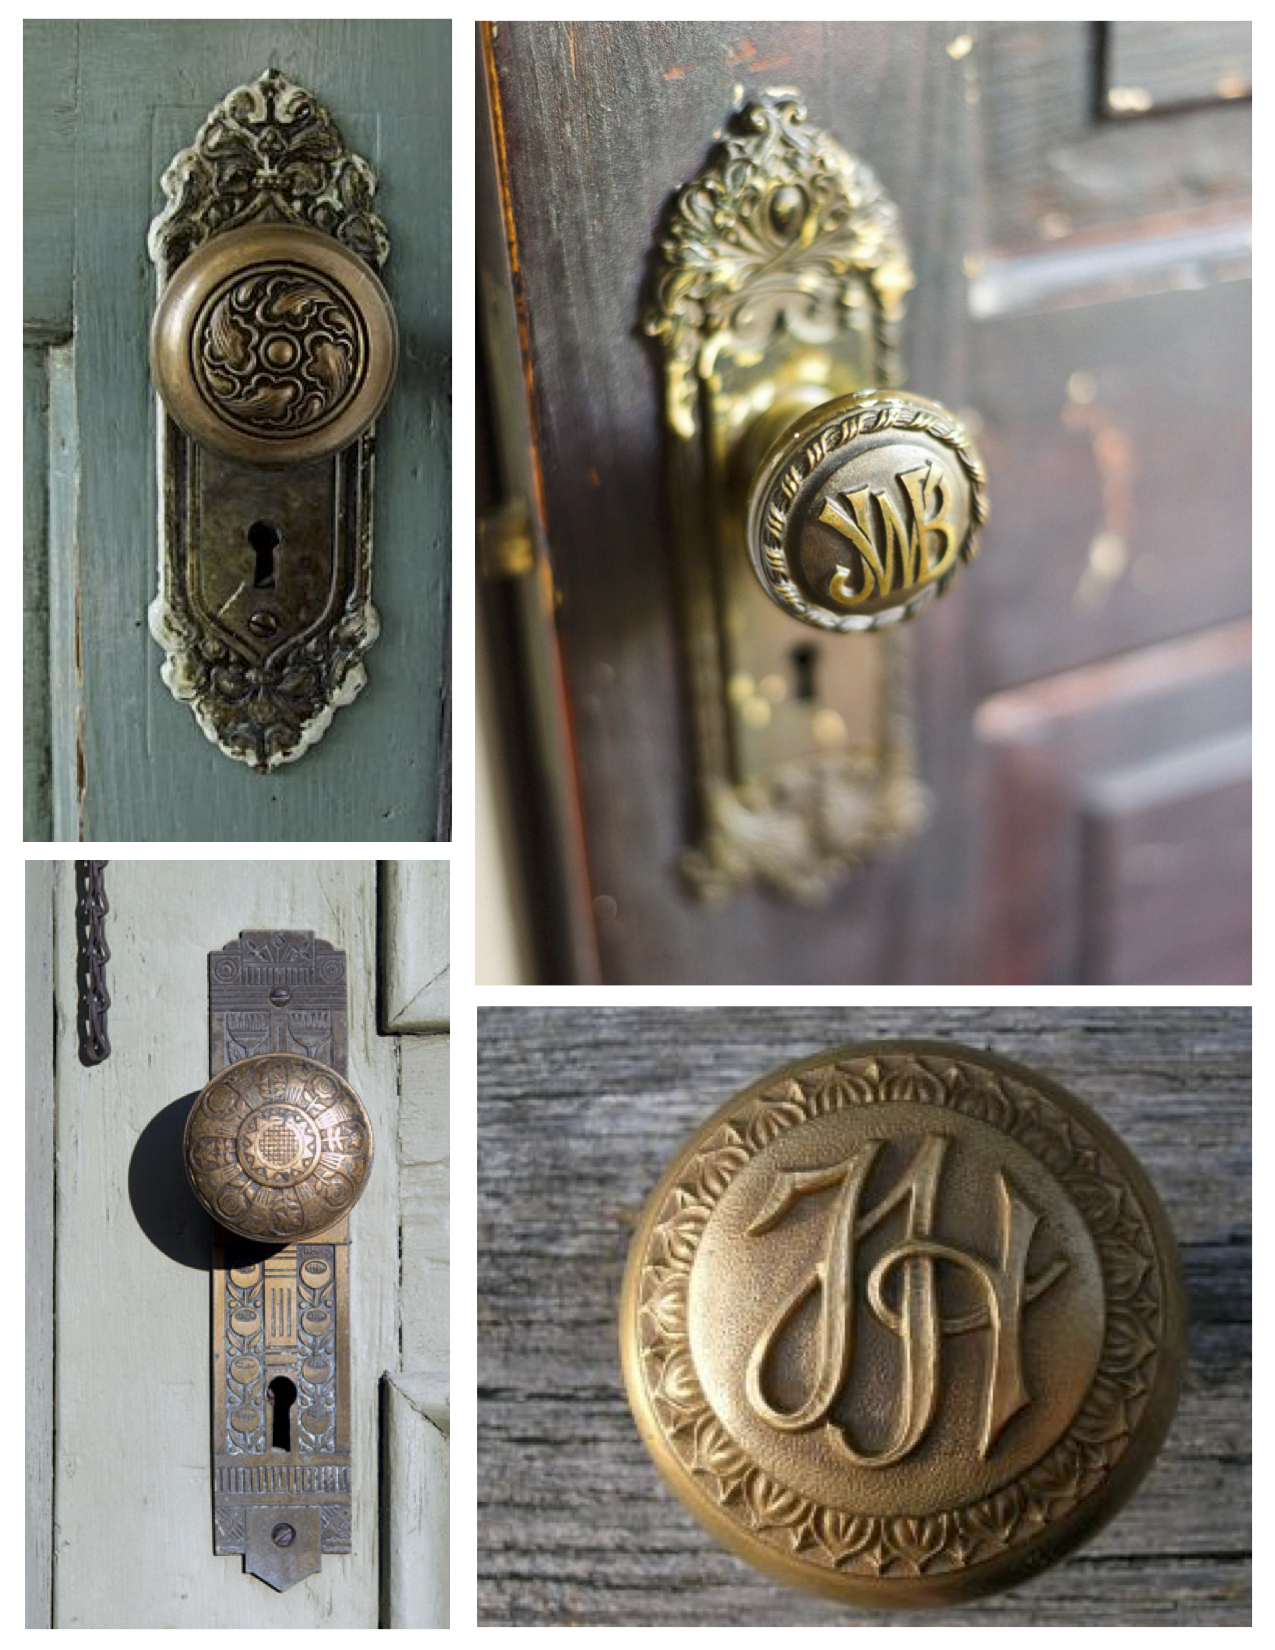 ... Details Of Elegance: The Vintage Door Knob